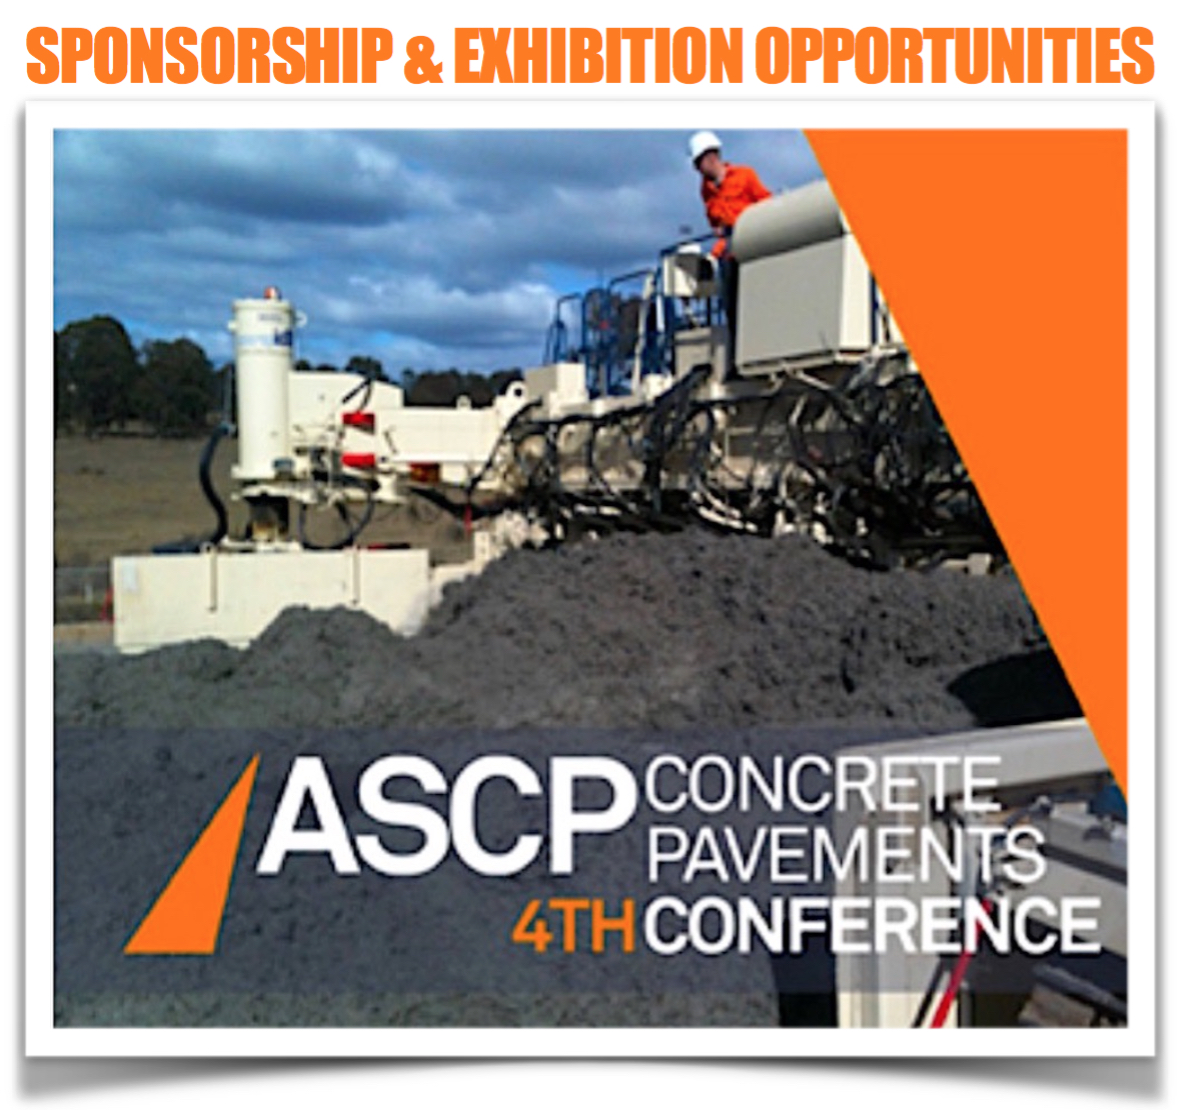 Sponsorship & Exhibition Opportunities! July 16-18, 2017 at the ASCP 4TH Concrete Pavements Conference